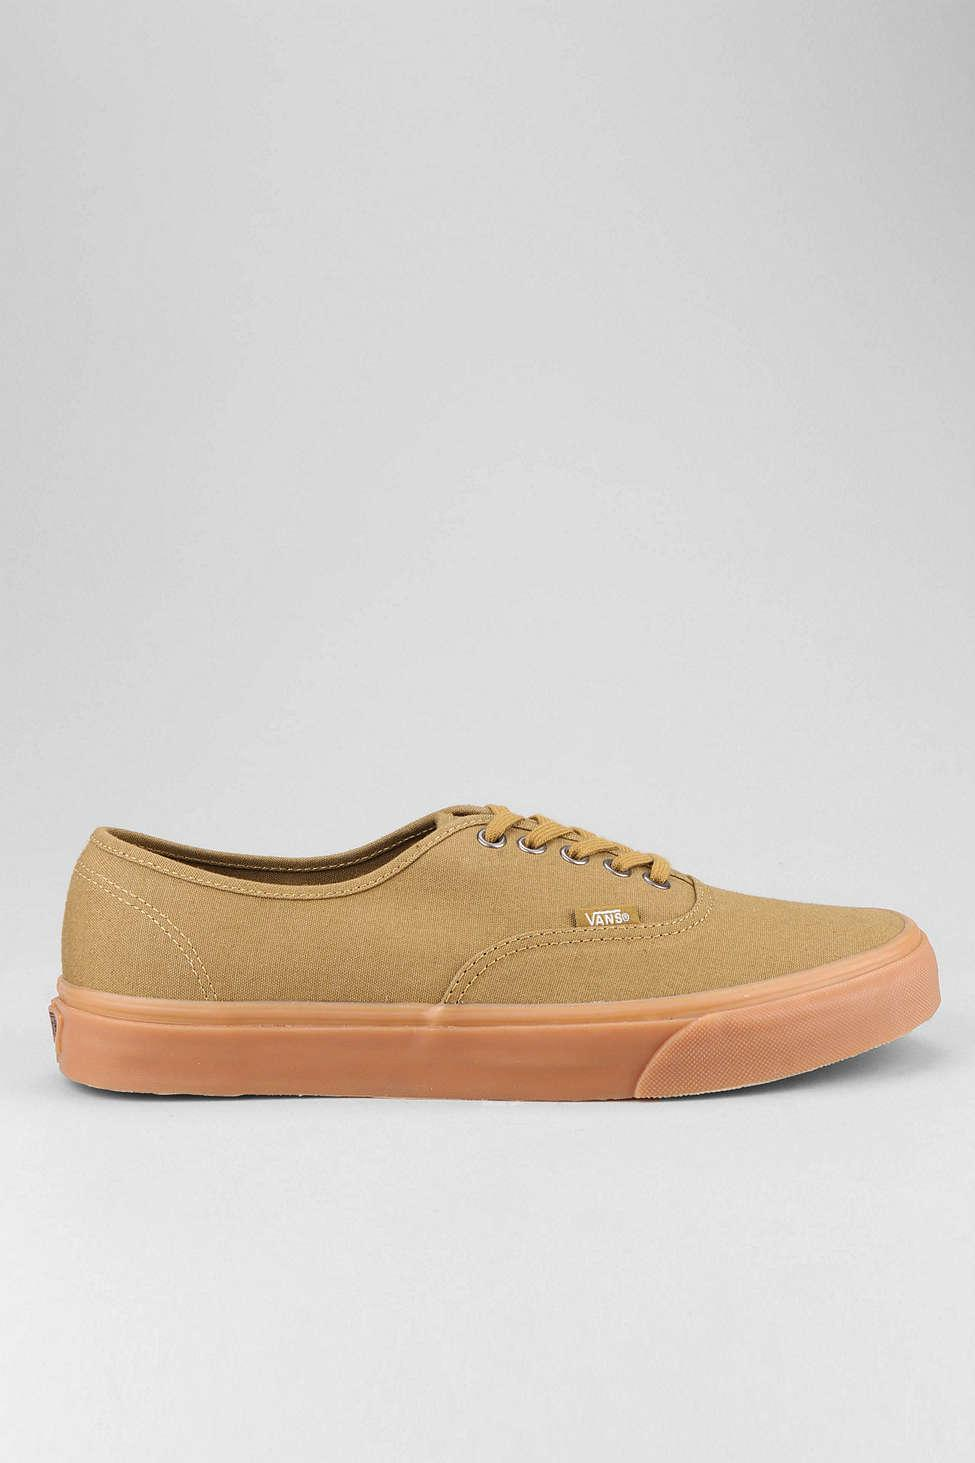 Lyst - Vans Authentic Gum Sole Sneaker in Brown for Men d0ac69477